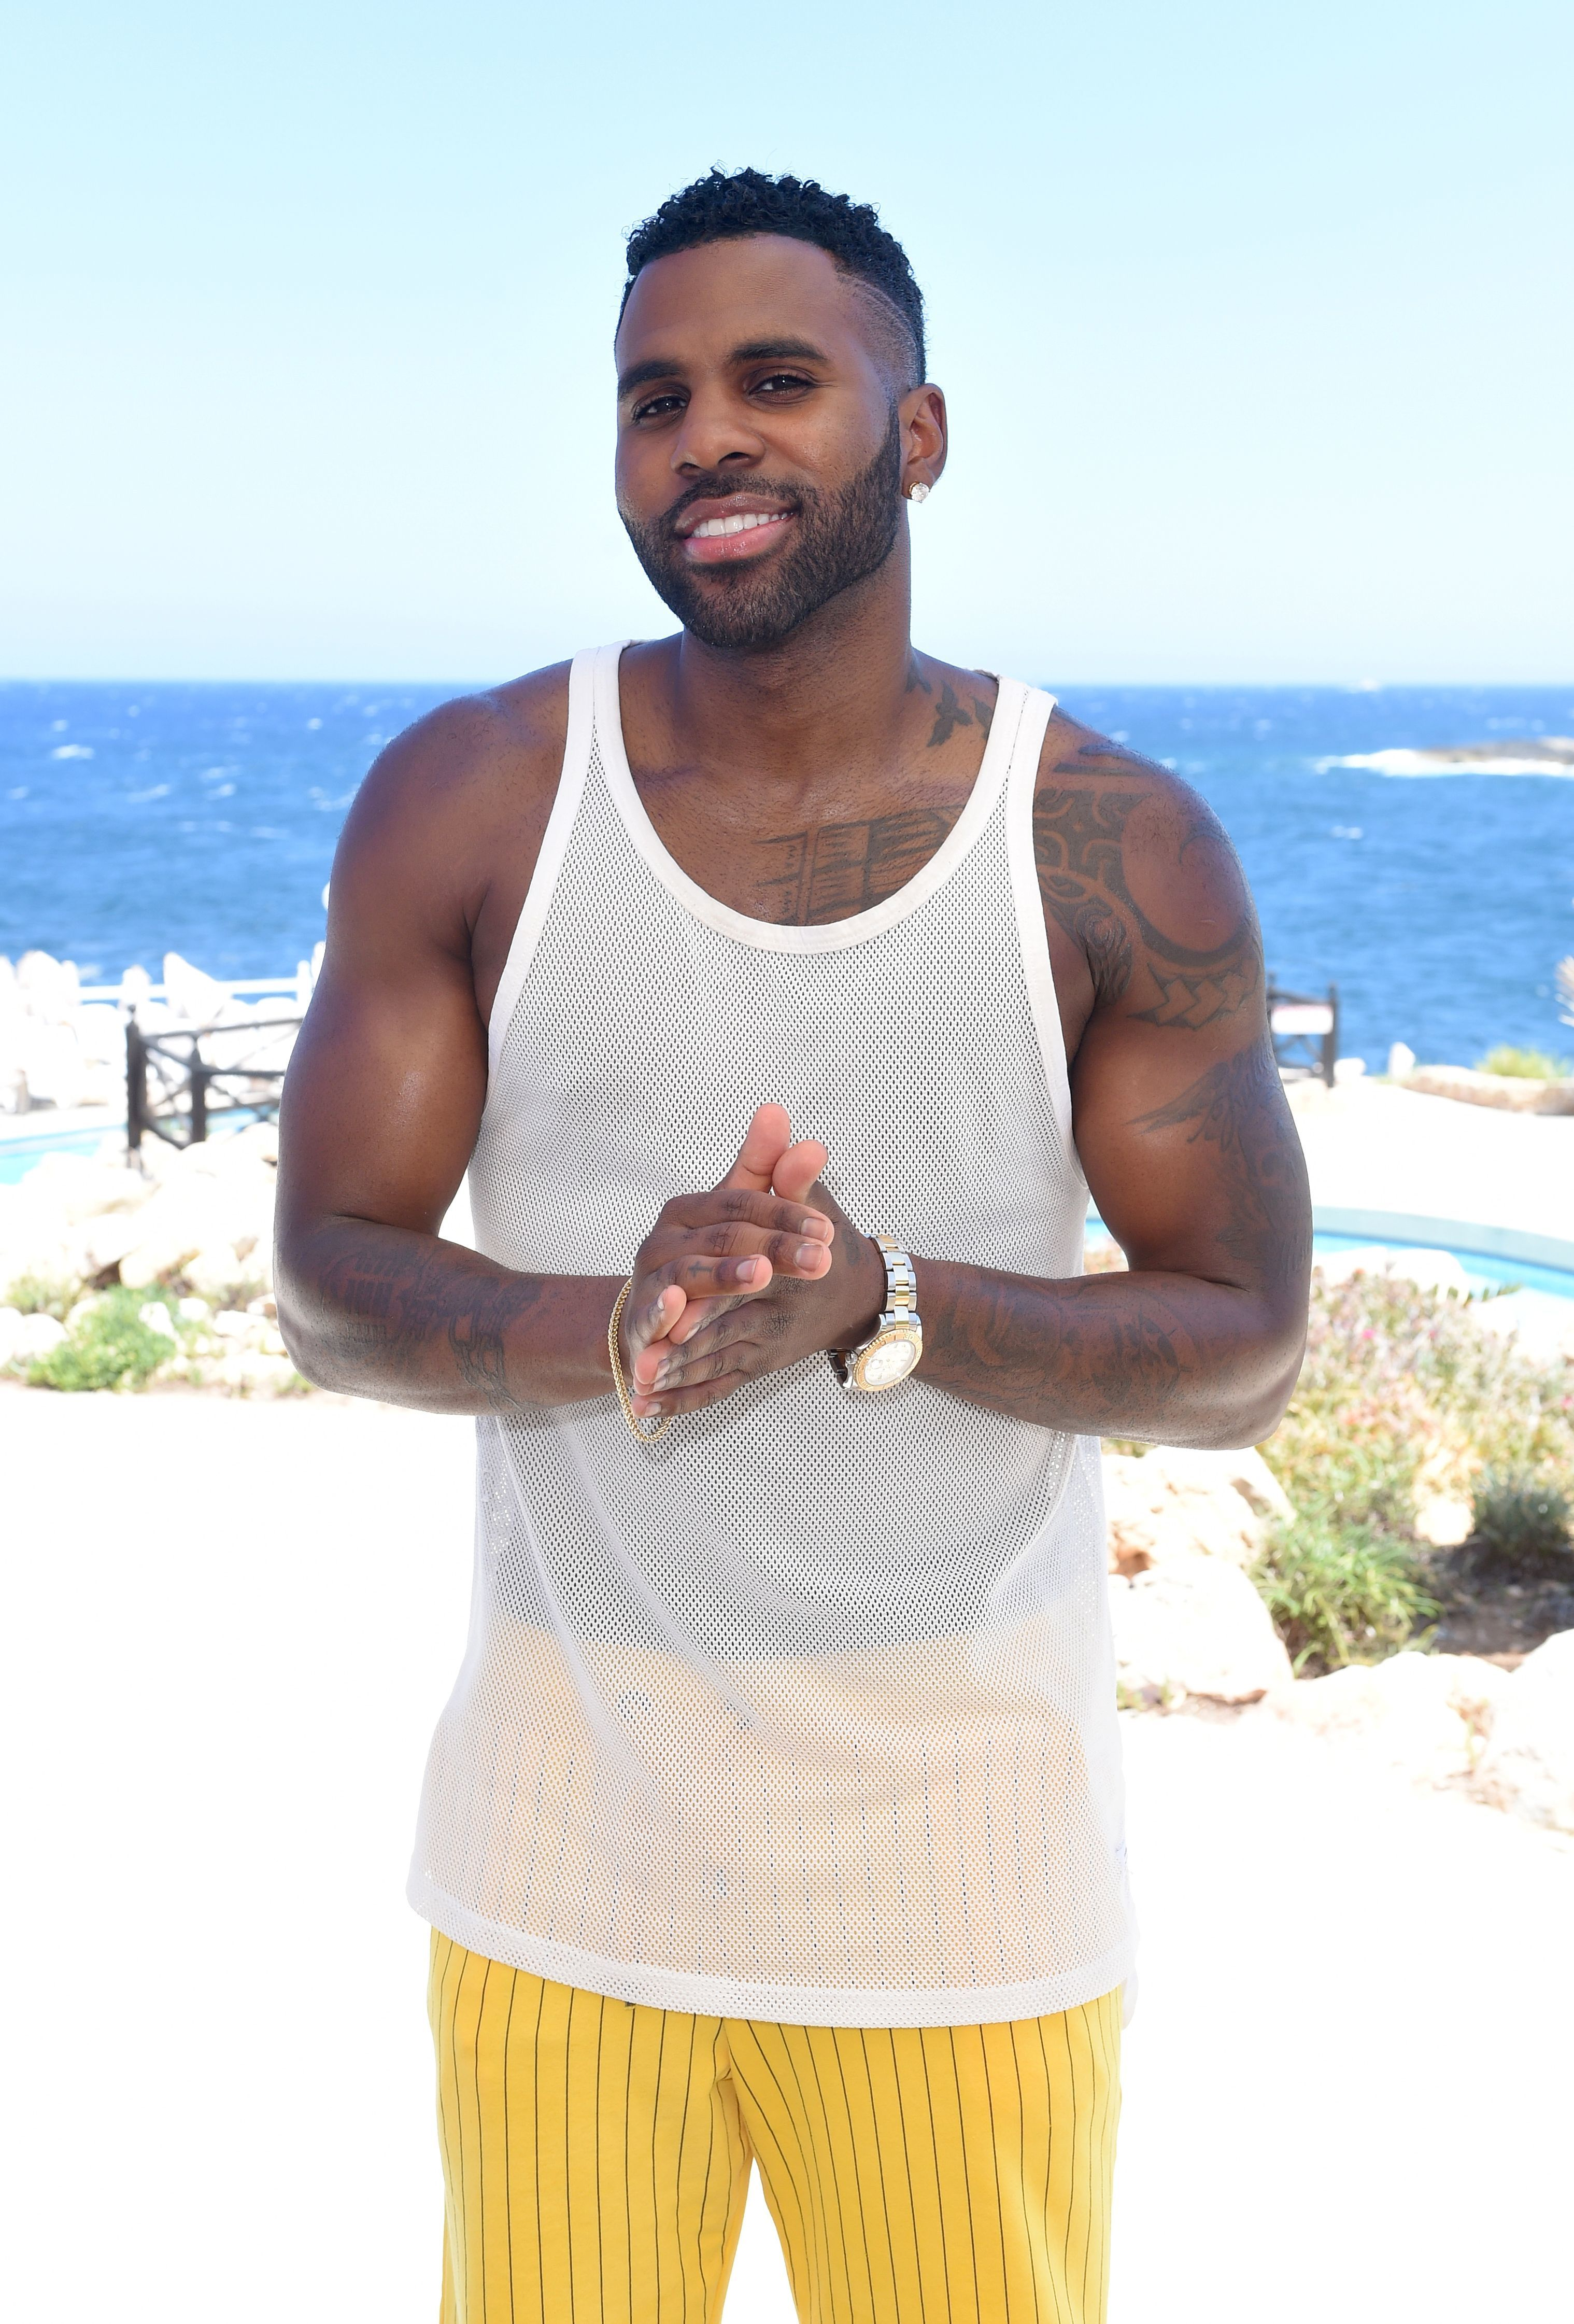 Jason Derulo appears at the Isle of MTV  press conference in Malta on June 27, 2018.